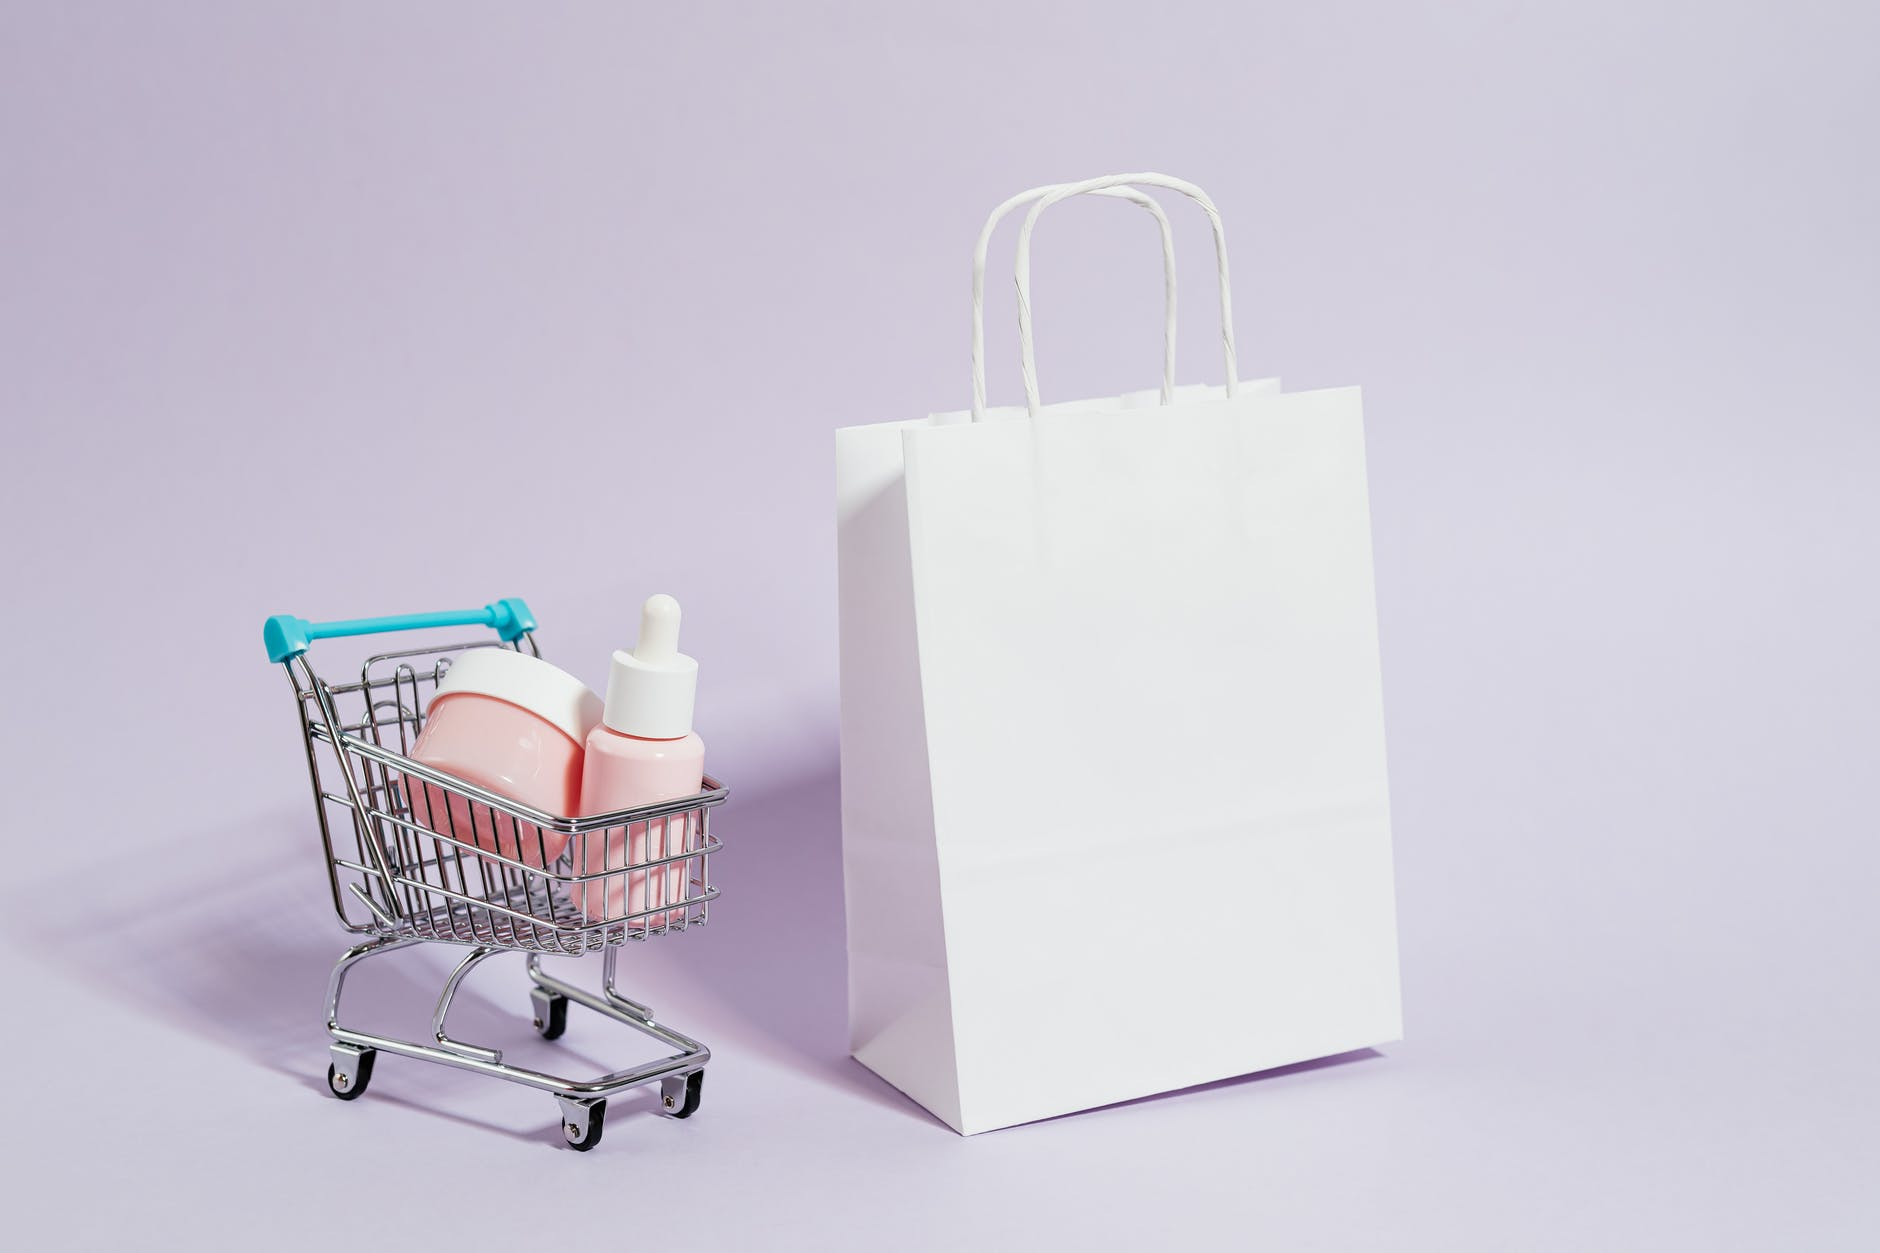 shopping cart next to a white paper bag